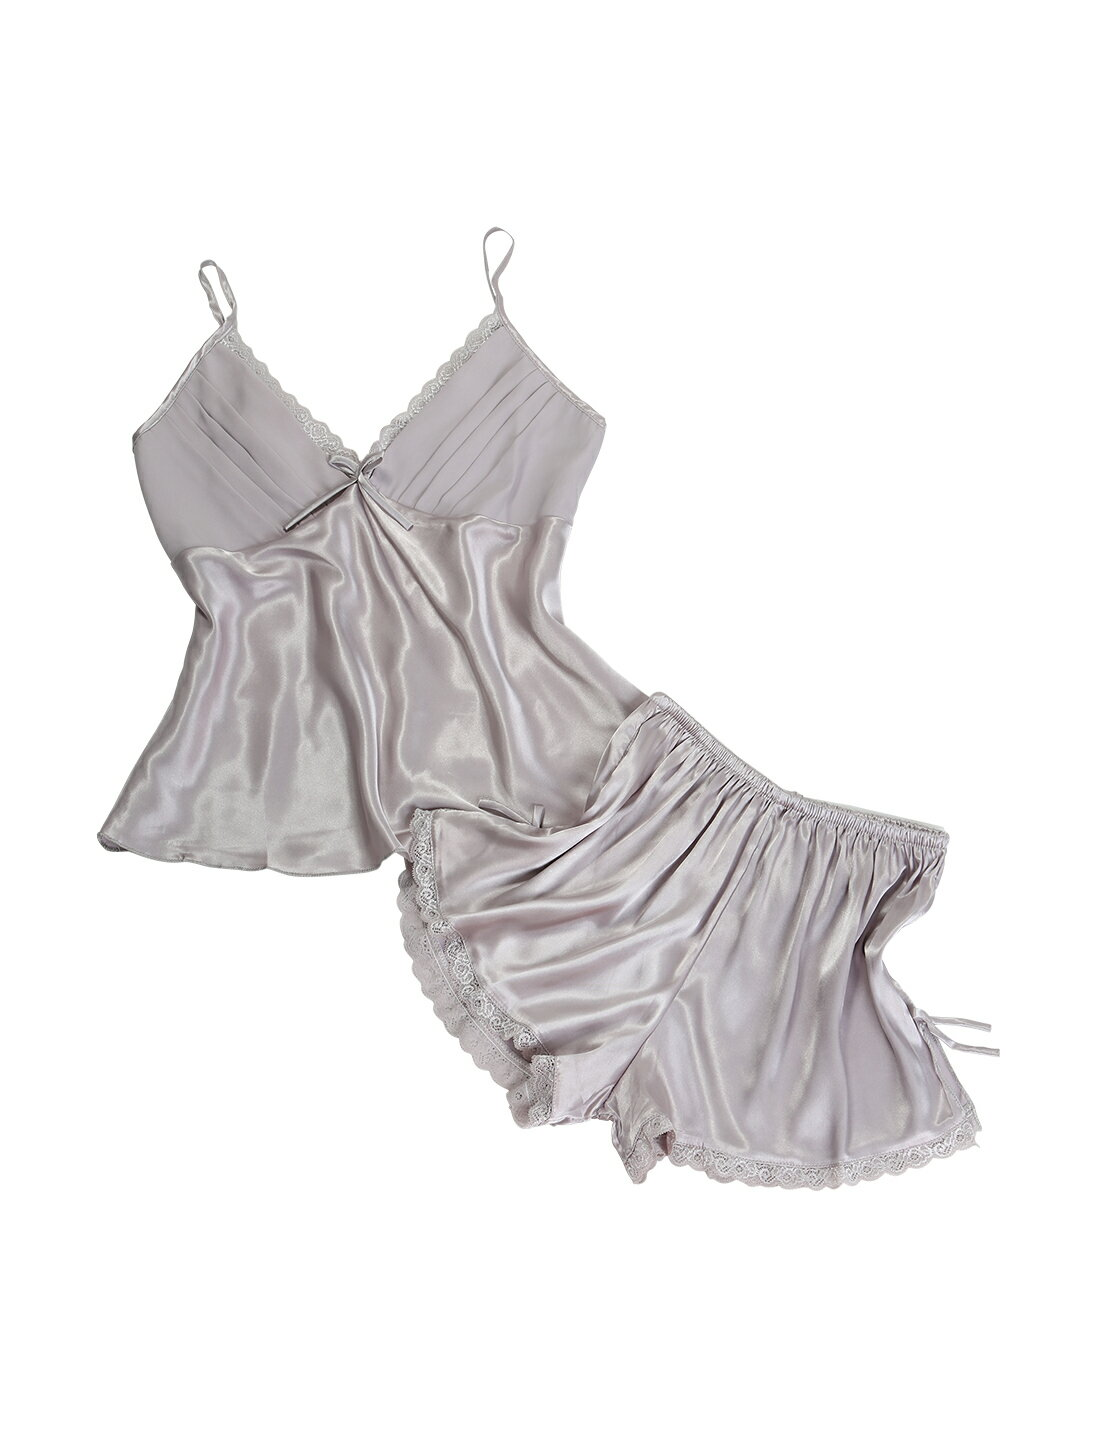 121be778e84e Unique Bargains Women s Silk Satin Lace Sexy Camisole Shorts Pajama  Sleepwear Sets Silver Gray (Size